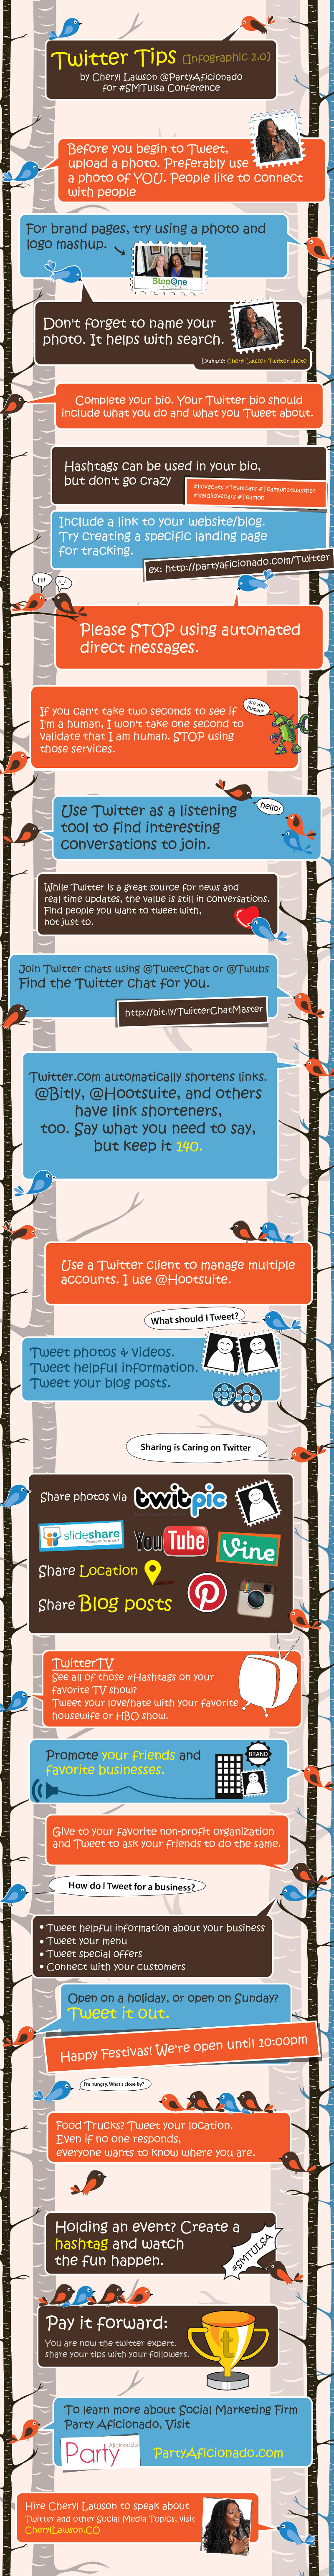 27 Cool Twitter Tricks for 2013